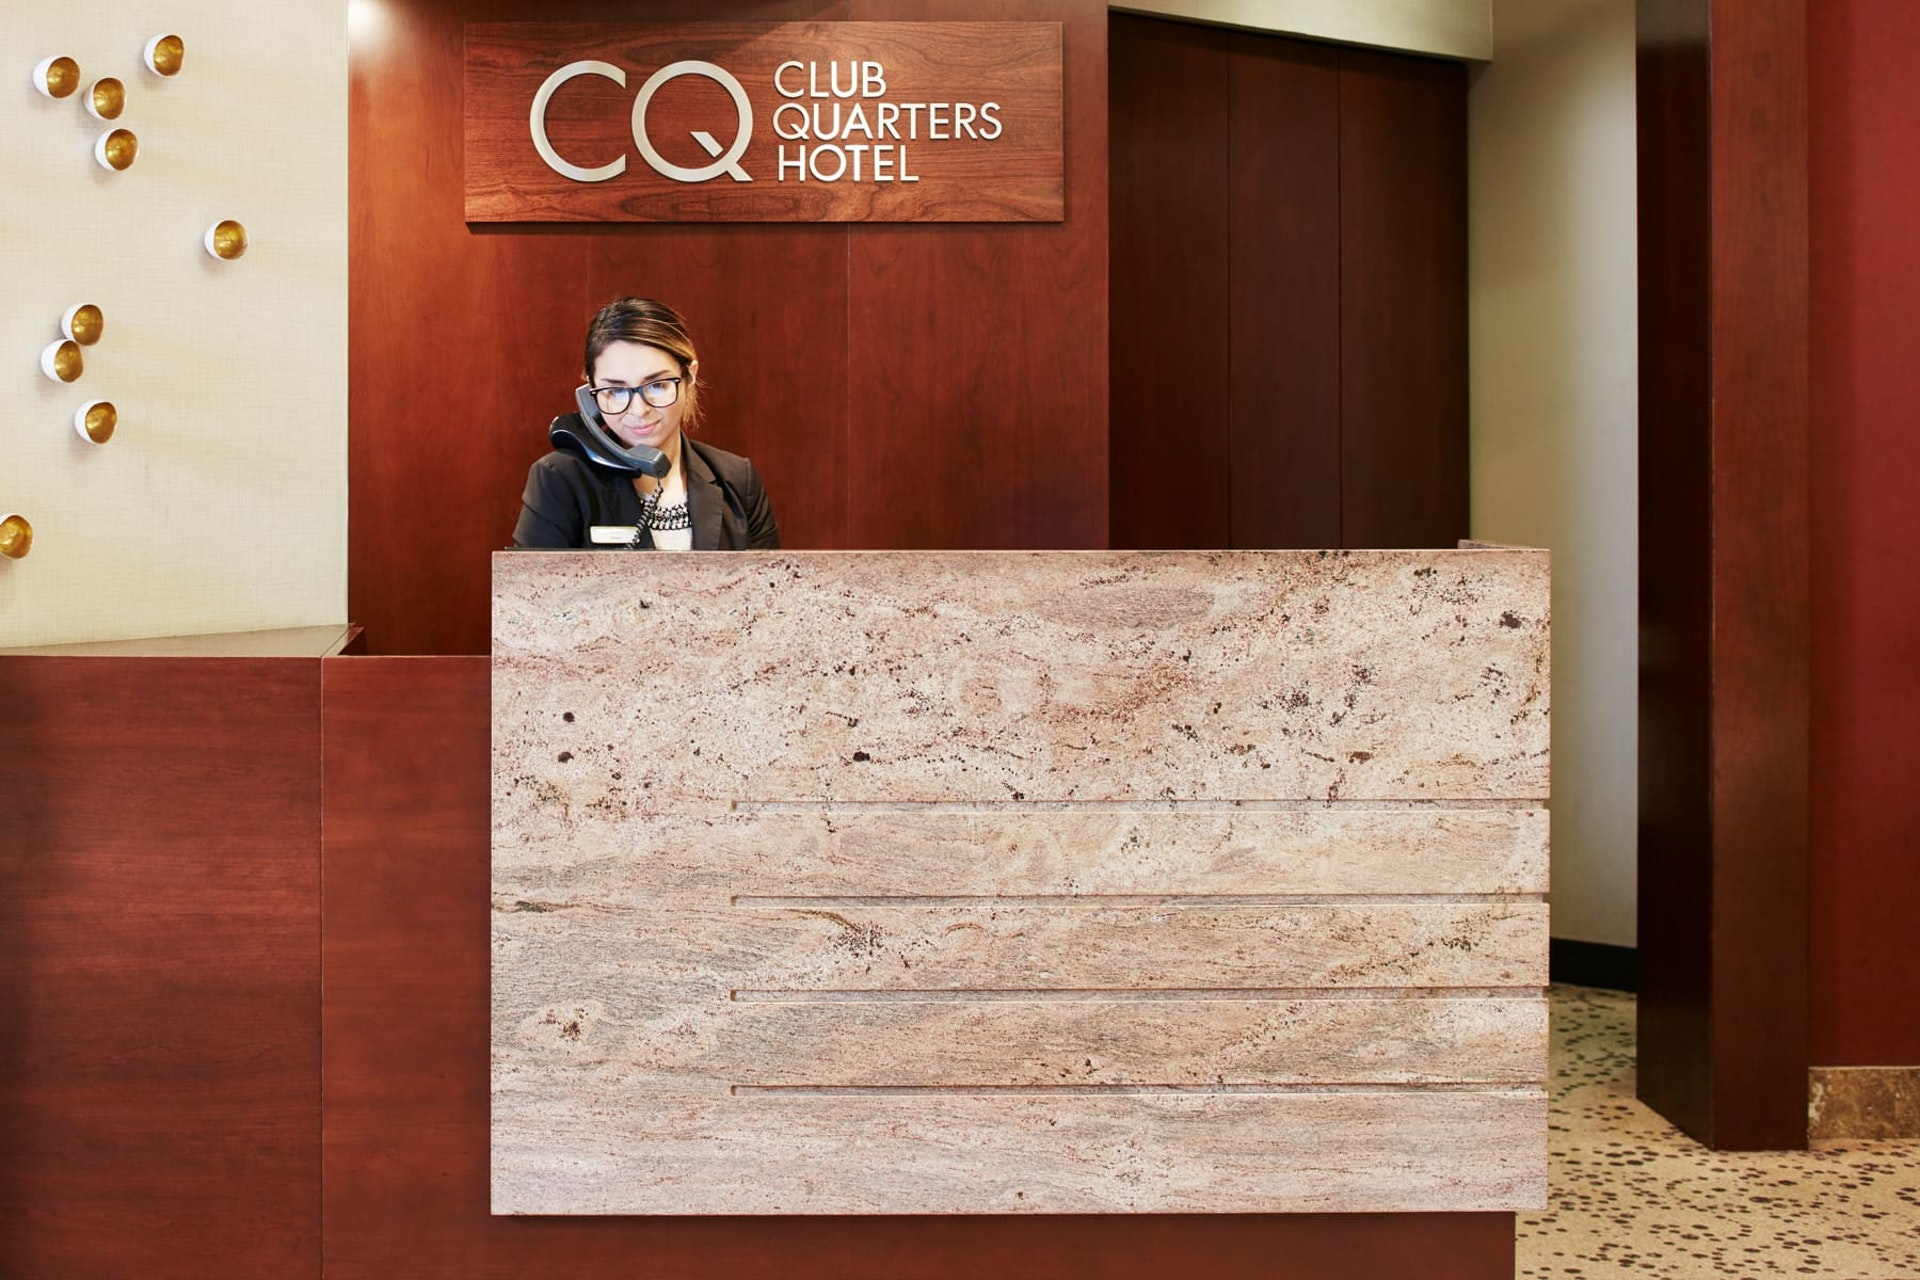 Member service desk at CQ Hotel, Central Loop, Chicago